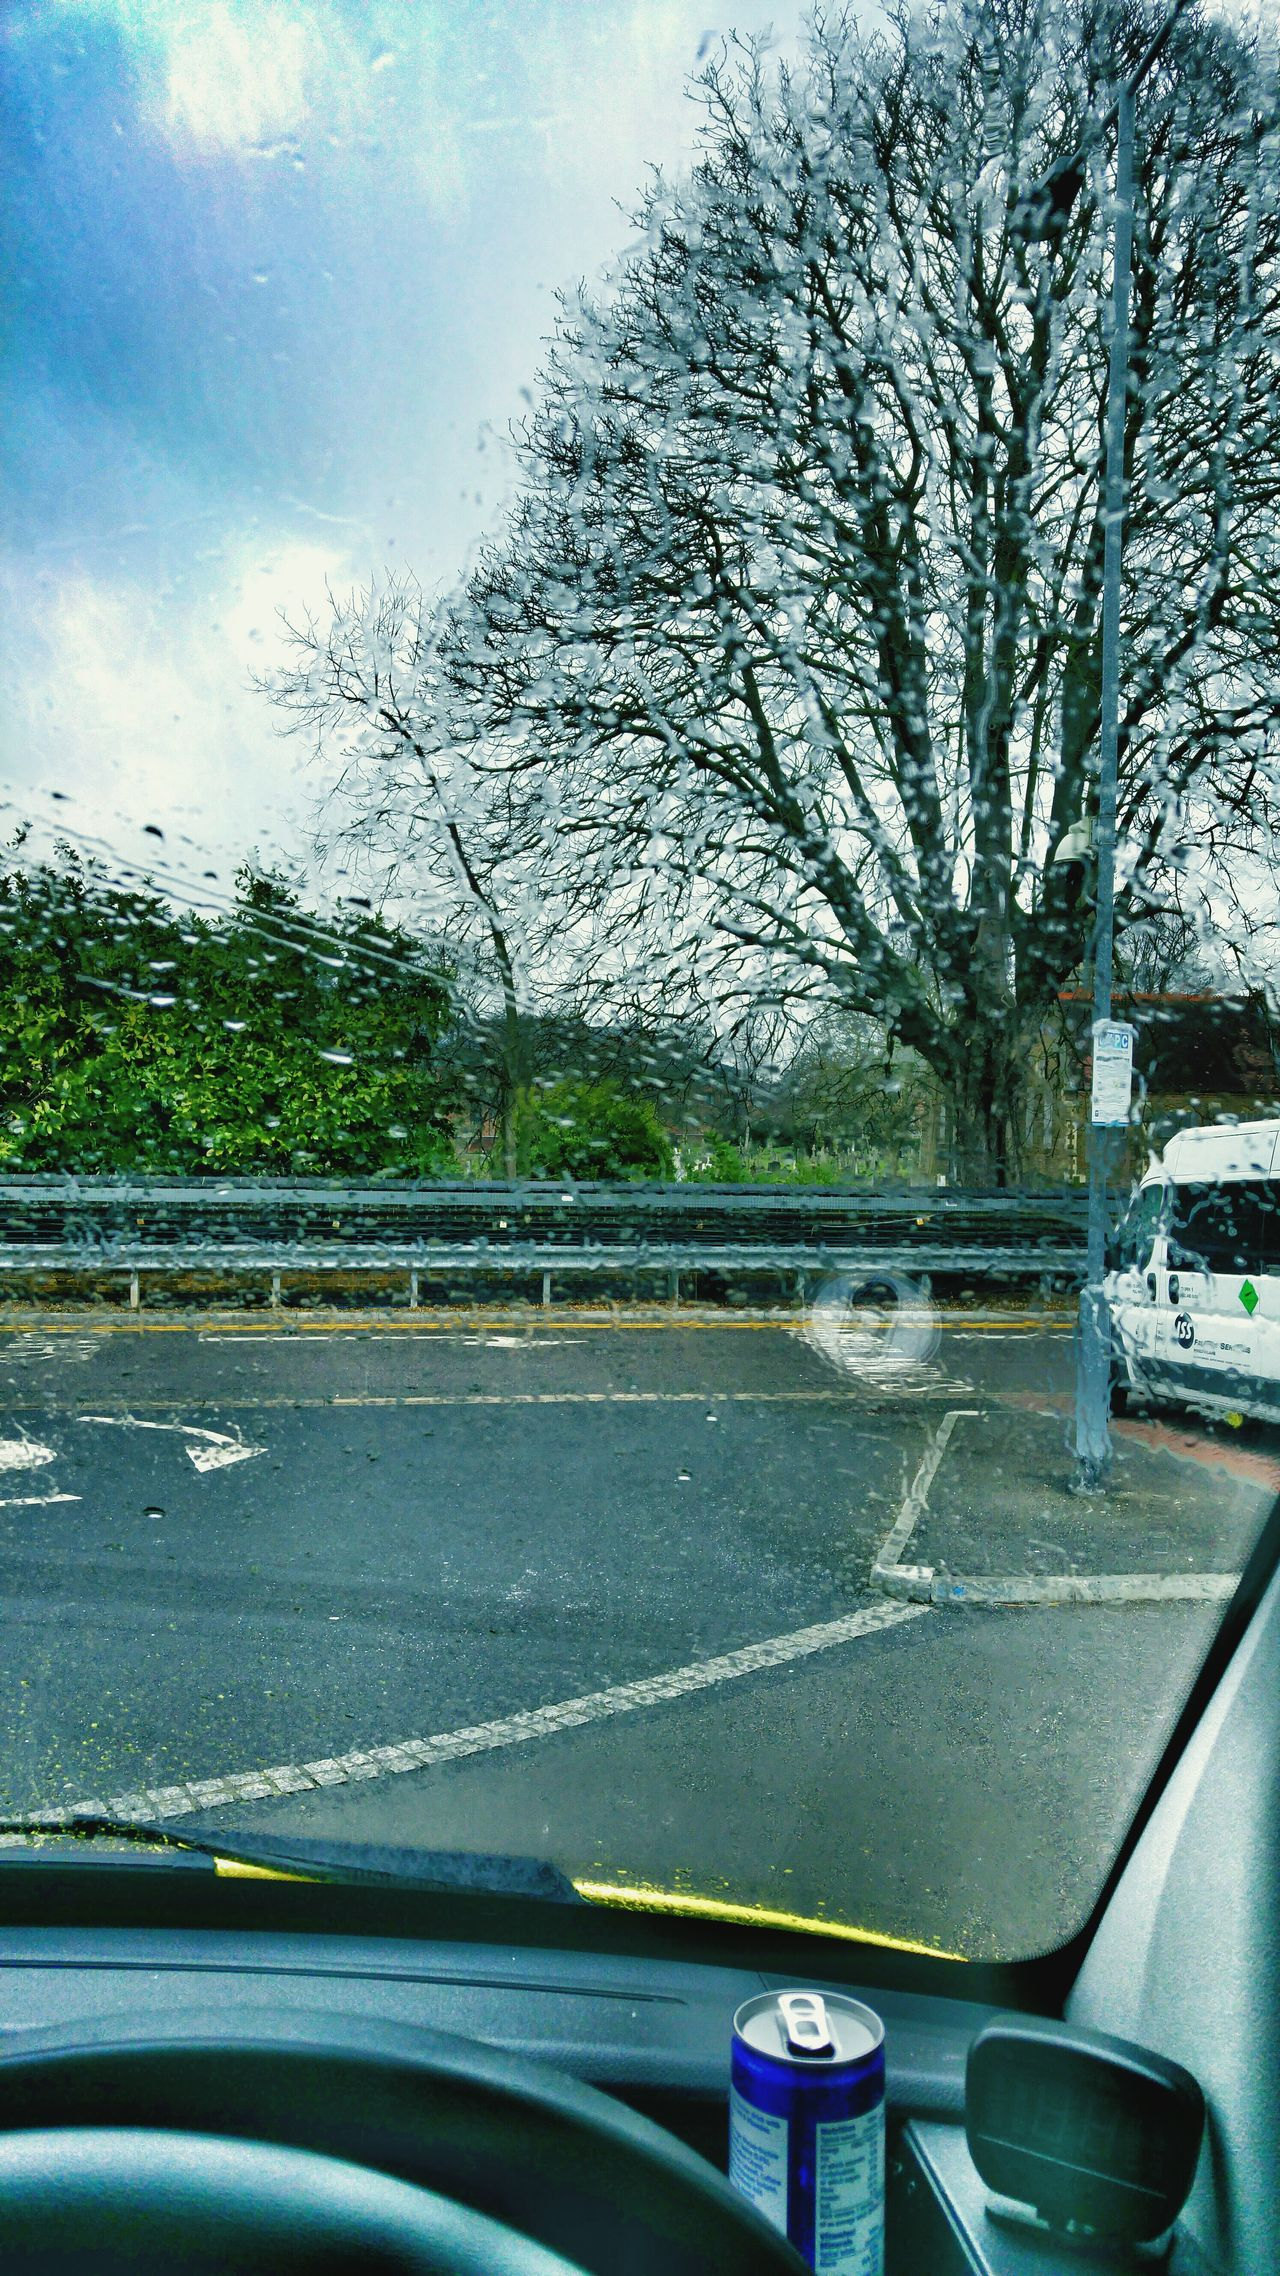 Hello World London Ambulance Service Emergency Vehicle Rainy Day My Office Today Taking Photos Working Hard Ambulance What I Do